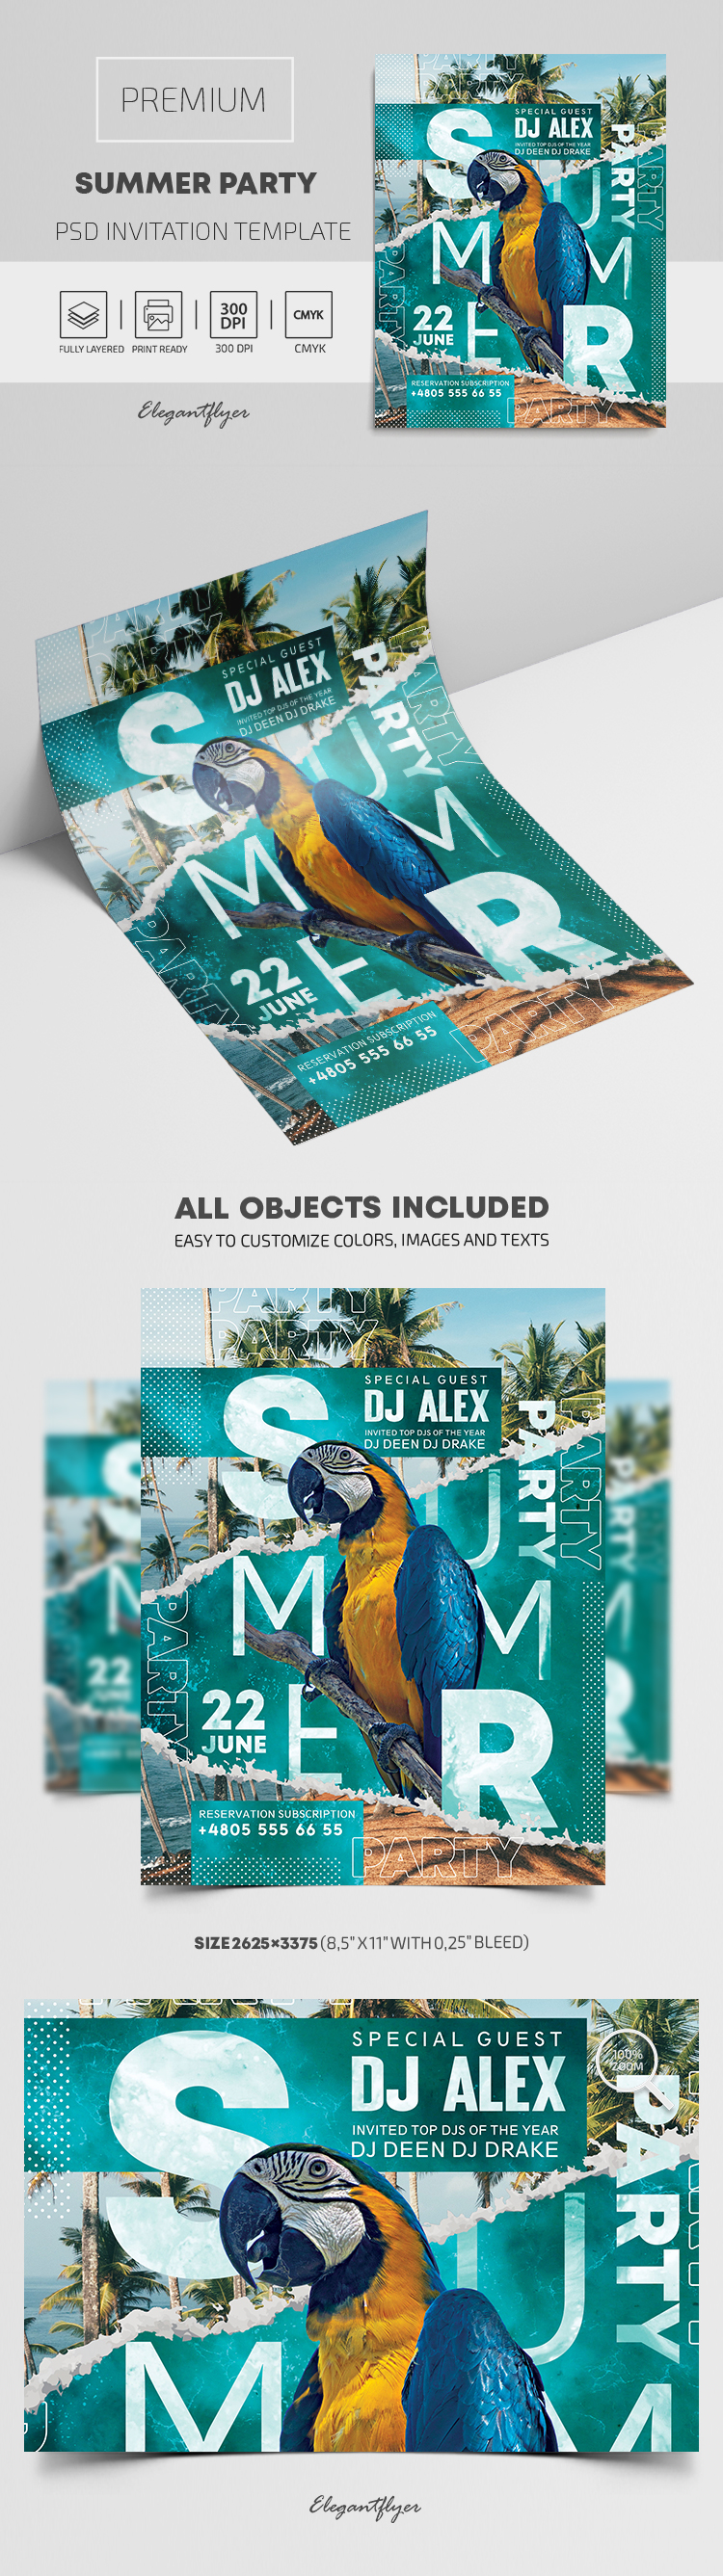 Summer Party – Premium PSD Invitation Template